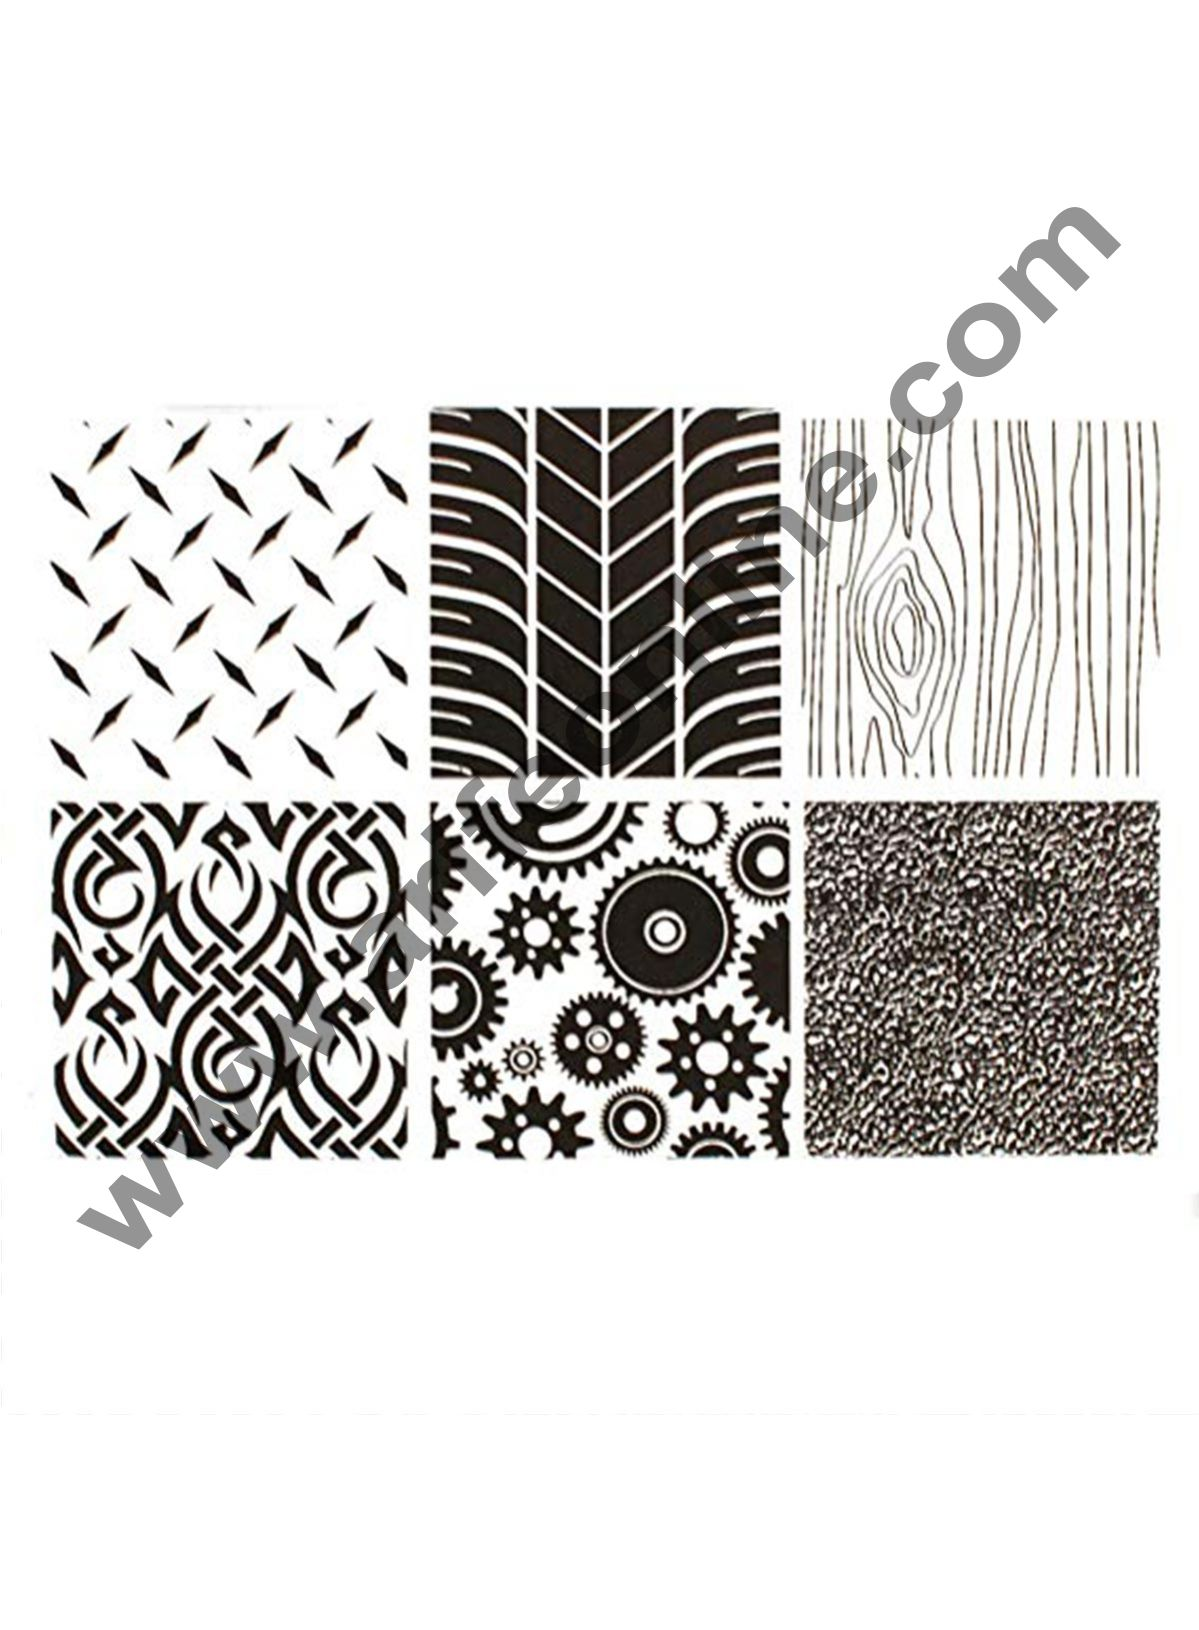 Cake Decor 6PCS Manly Texture Sheet Set Tyre Texture Mat For Sugar Craft Decoration Cookie Cupcake Fondant Cake Mold Baking Tools For Cakes